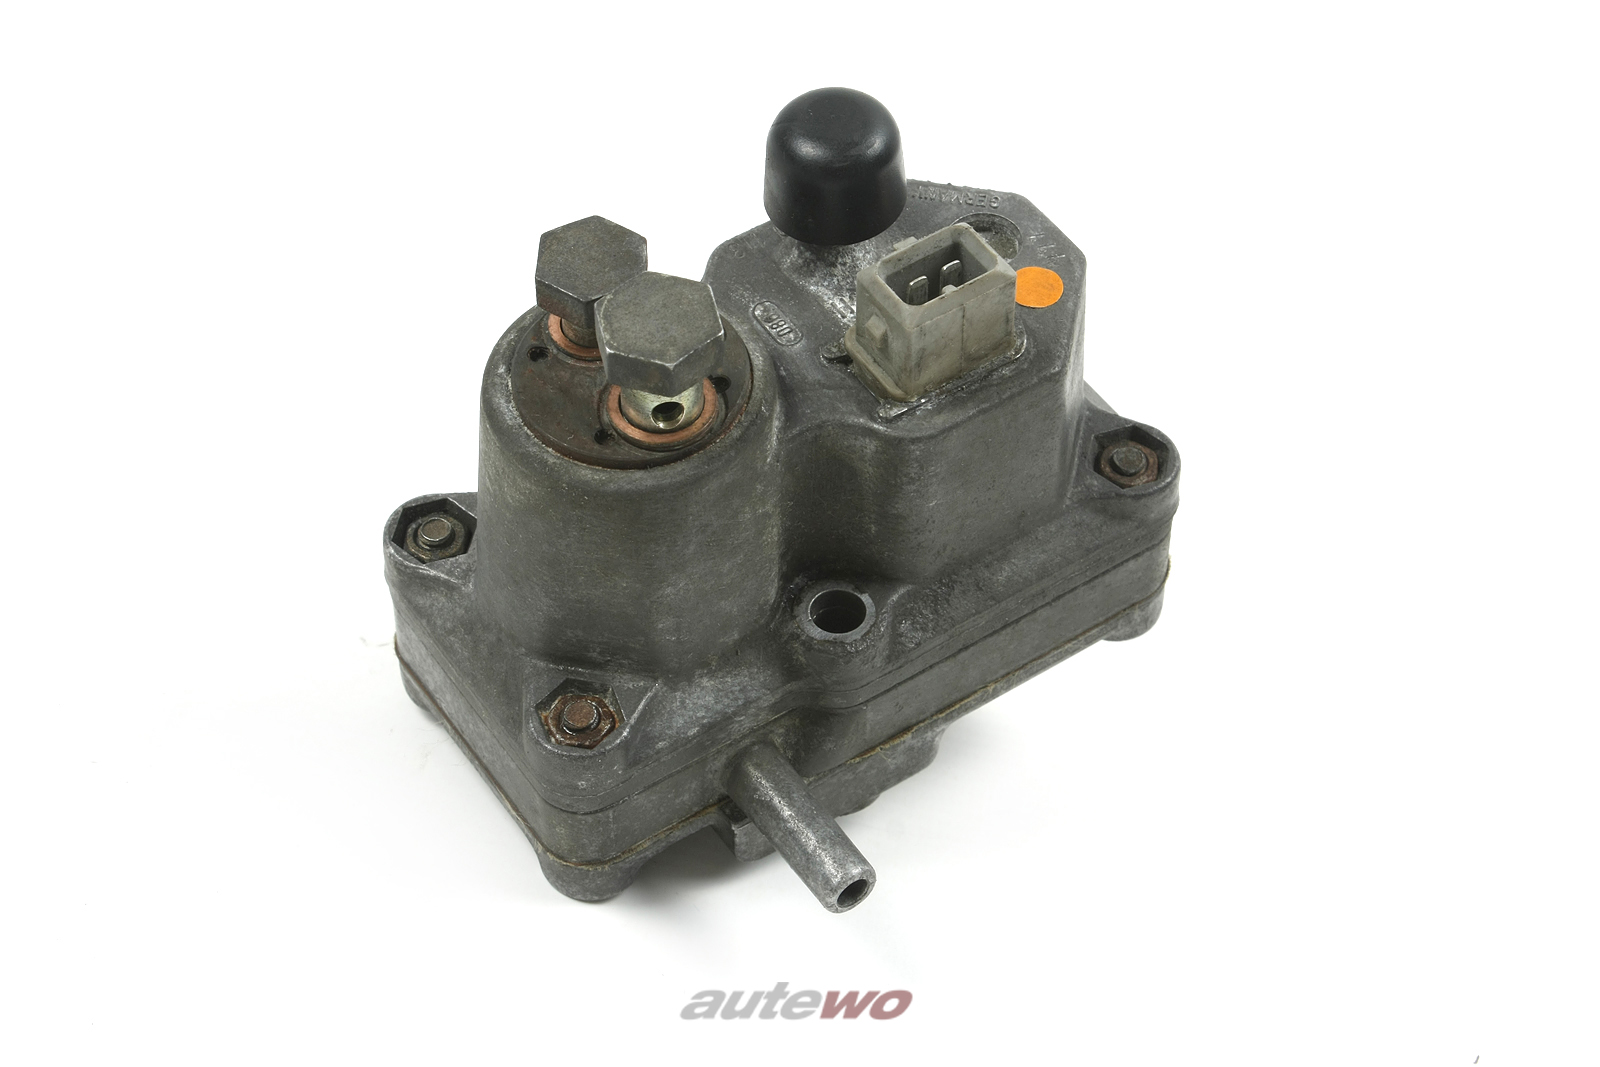 035133403E 0438140113 Audi/VW 90/Coupe 81/85/100 44 2.0/2.2l Warmlaufregler